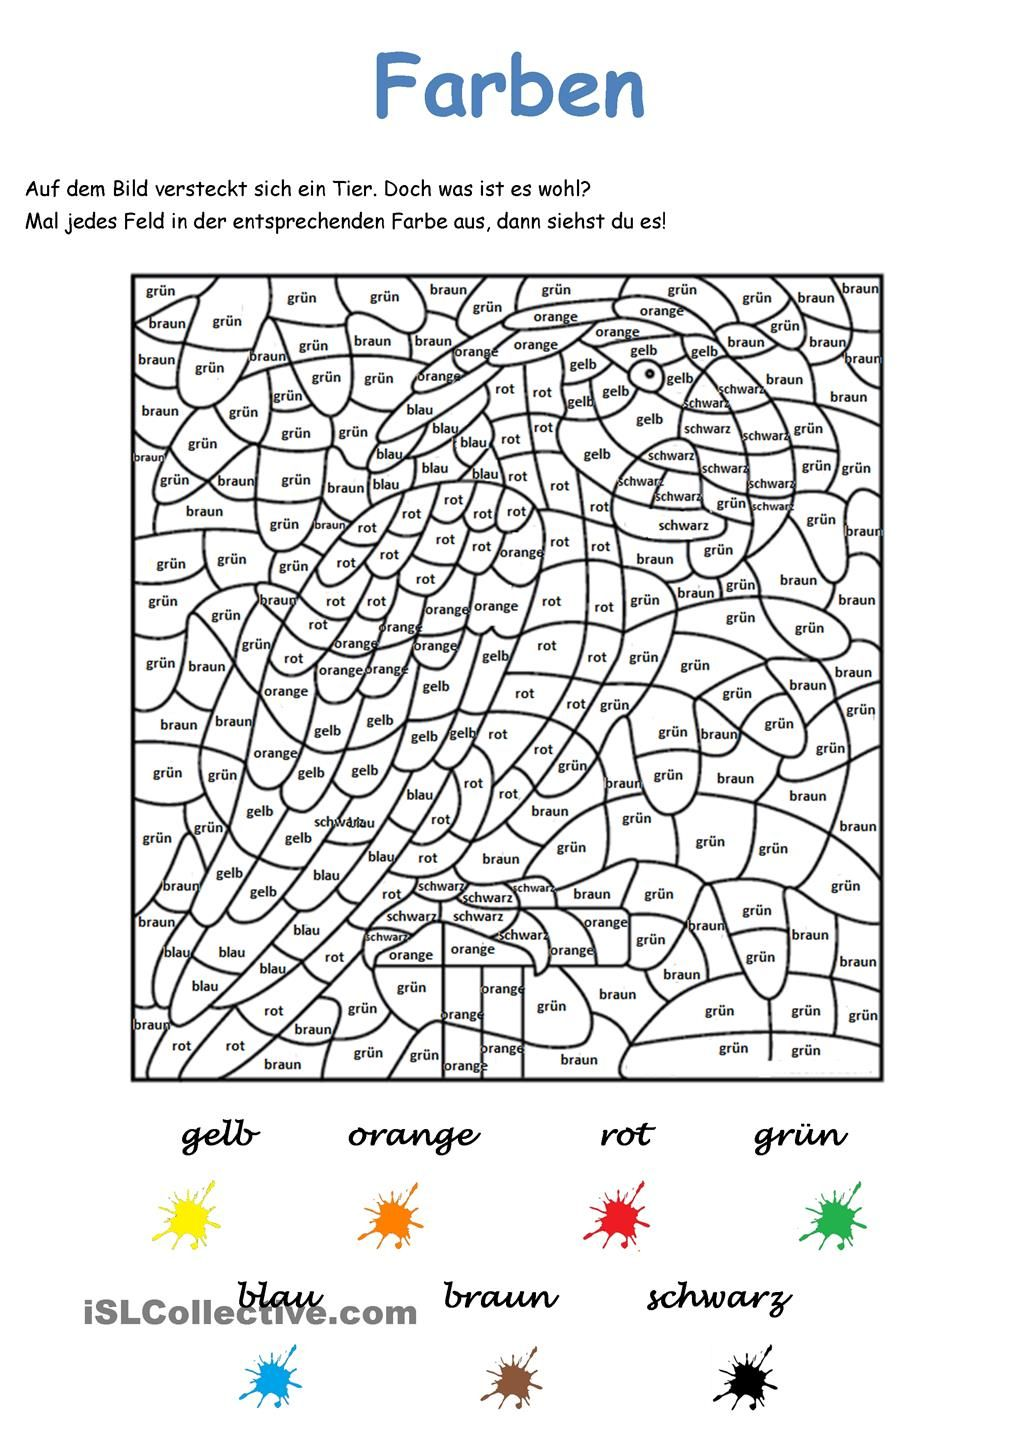 Farben - Bilderrätsel | tysk | Pinterest | Learn german, Worksheets ...